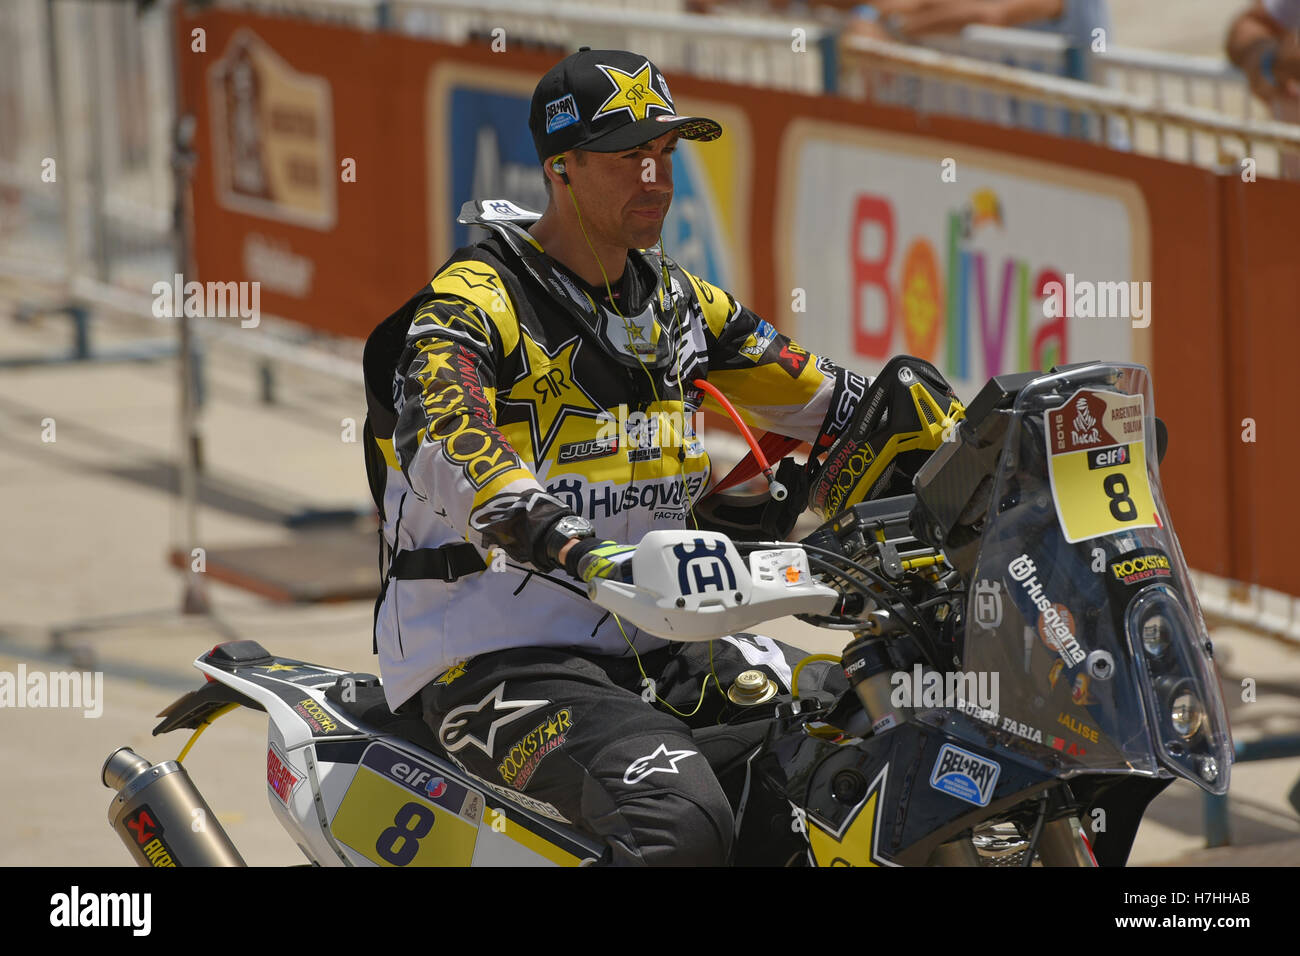 Husqvarna rider Ruben Faria (Portugal) during the symbolic start of the Dakar Rally 2016 in Buenos Aires, Argentina, - Stock Image